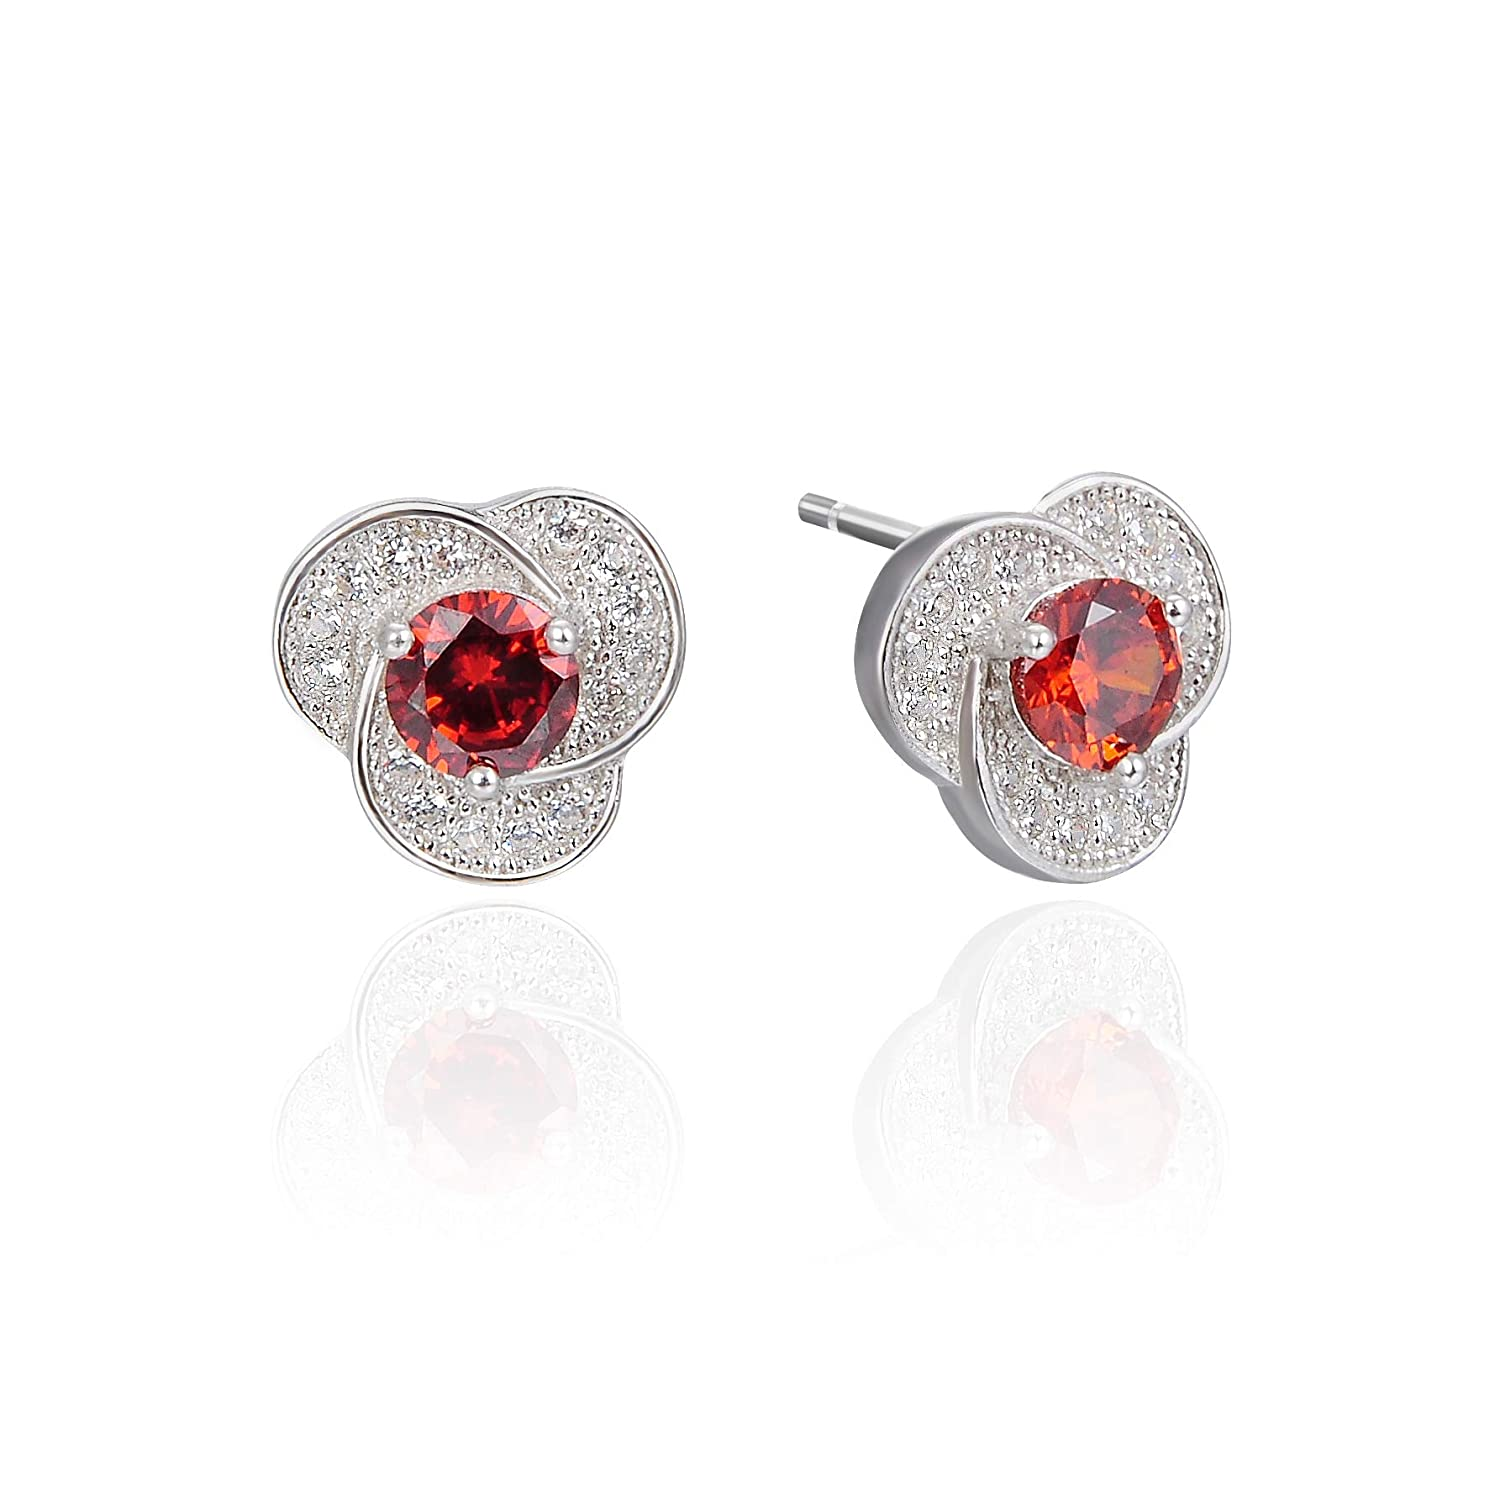 FHX Lovely Fashion Lady Fashion Jewelry 925 Sterling Silver with Diamond Zircon Stud Simple Flowers Embedded red gem Earrings for Women Girls Gifts.